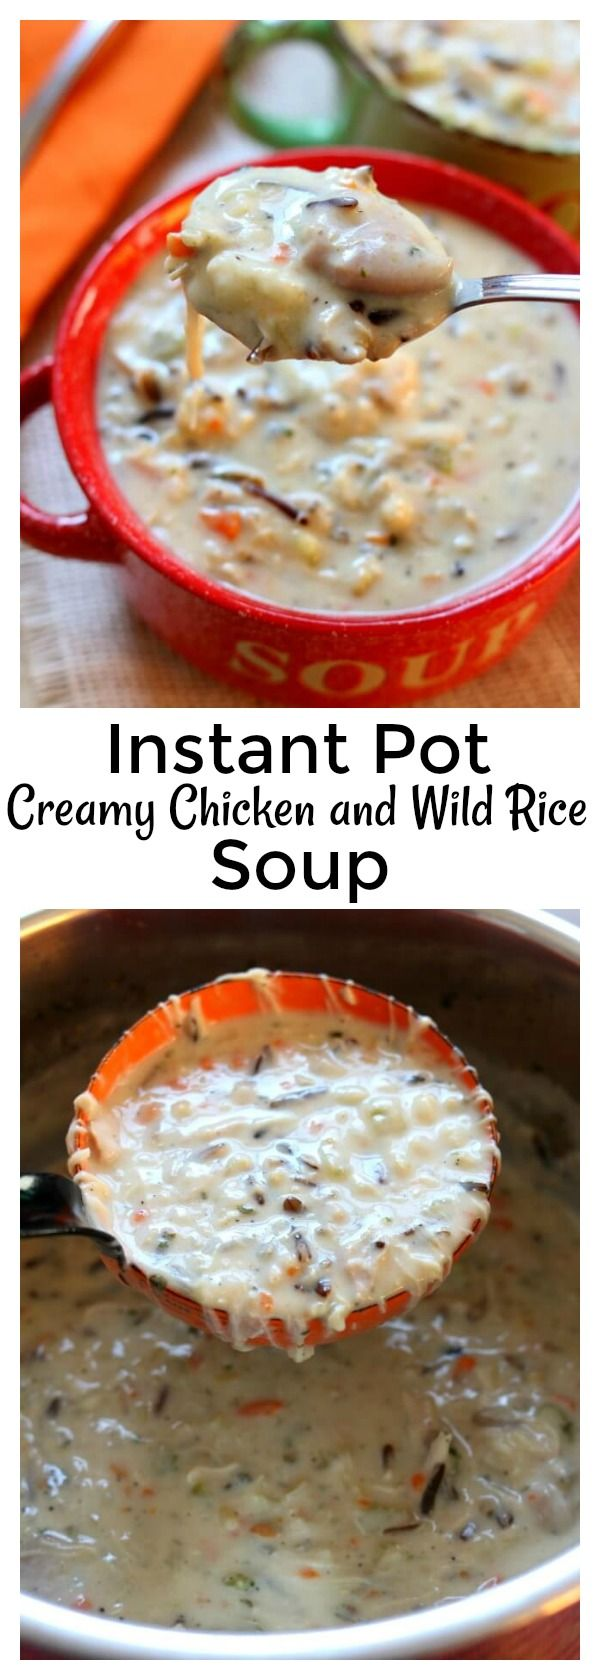 Instant Pot Creamy Wild Rice And Chicken Soup Recipe Instant Pot Wild Rice Soup Wild Rice